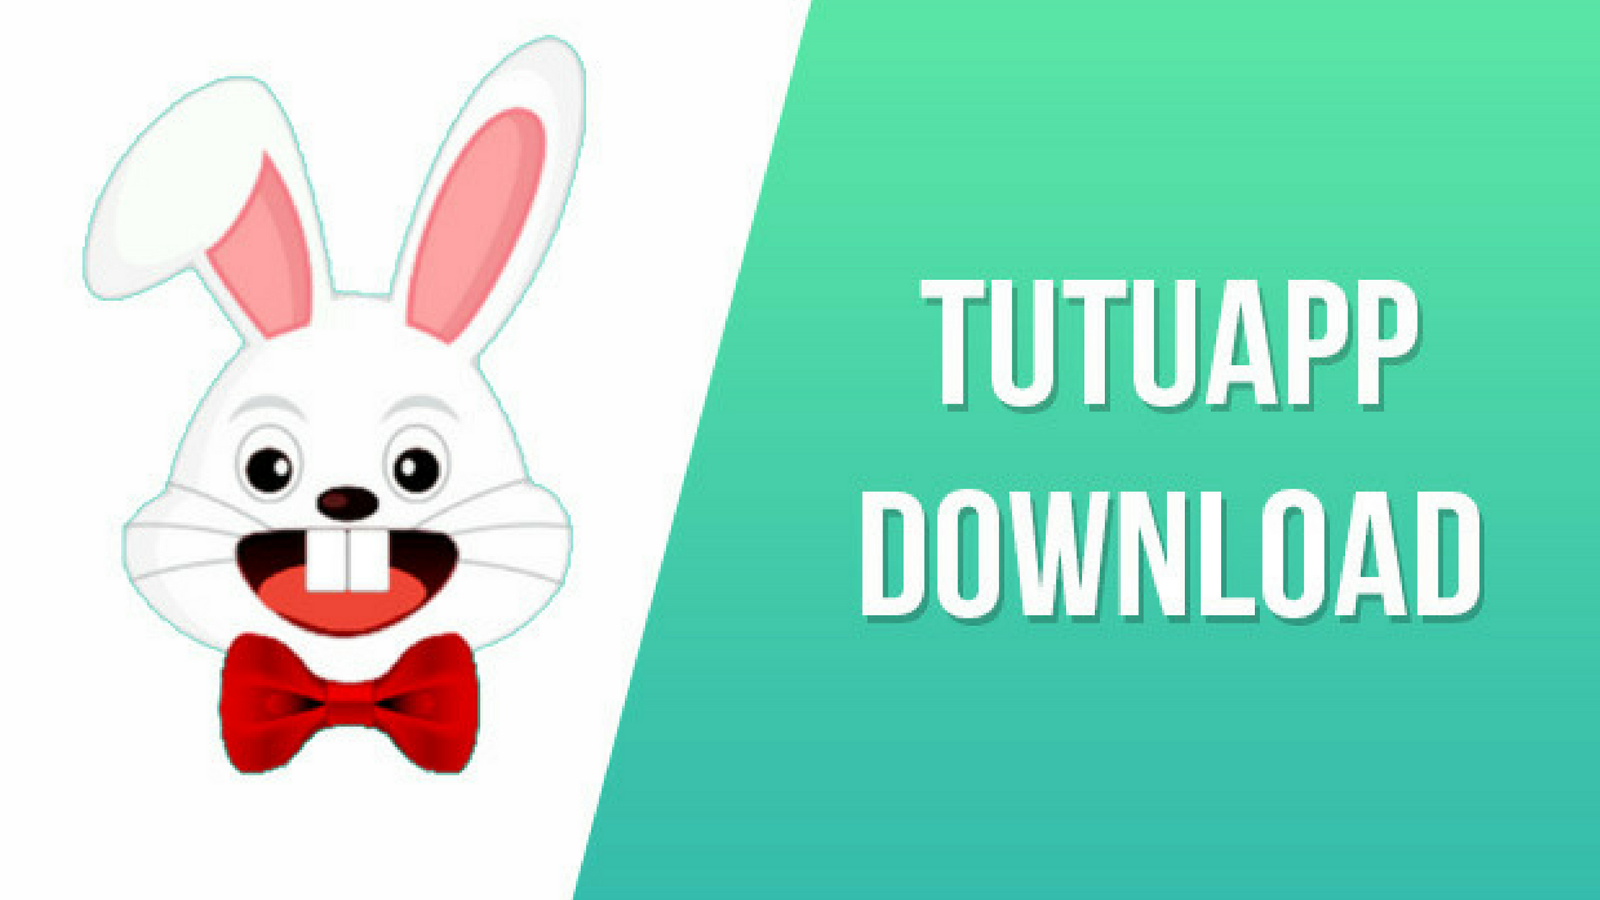 Download TutuApp for Android, iOS, Windows, and PC